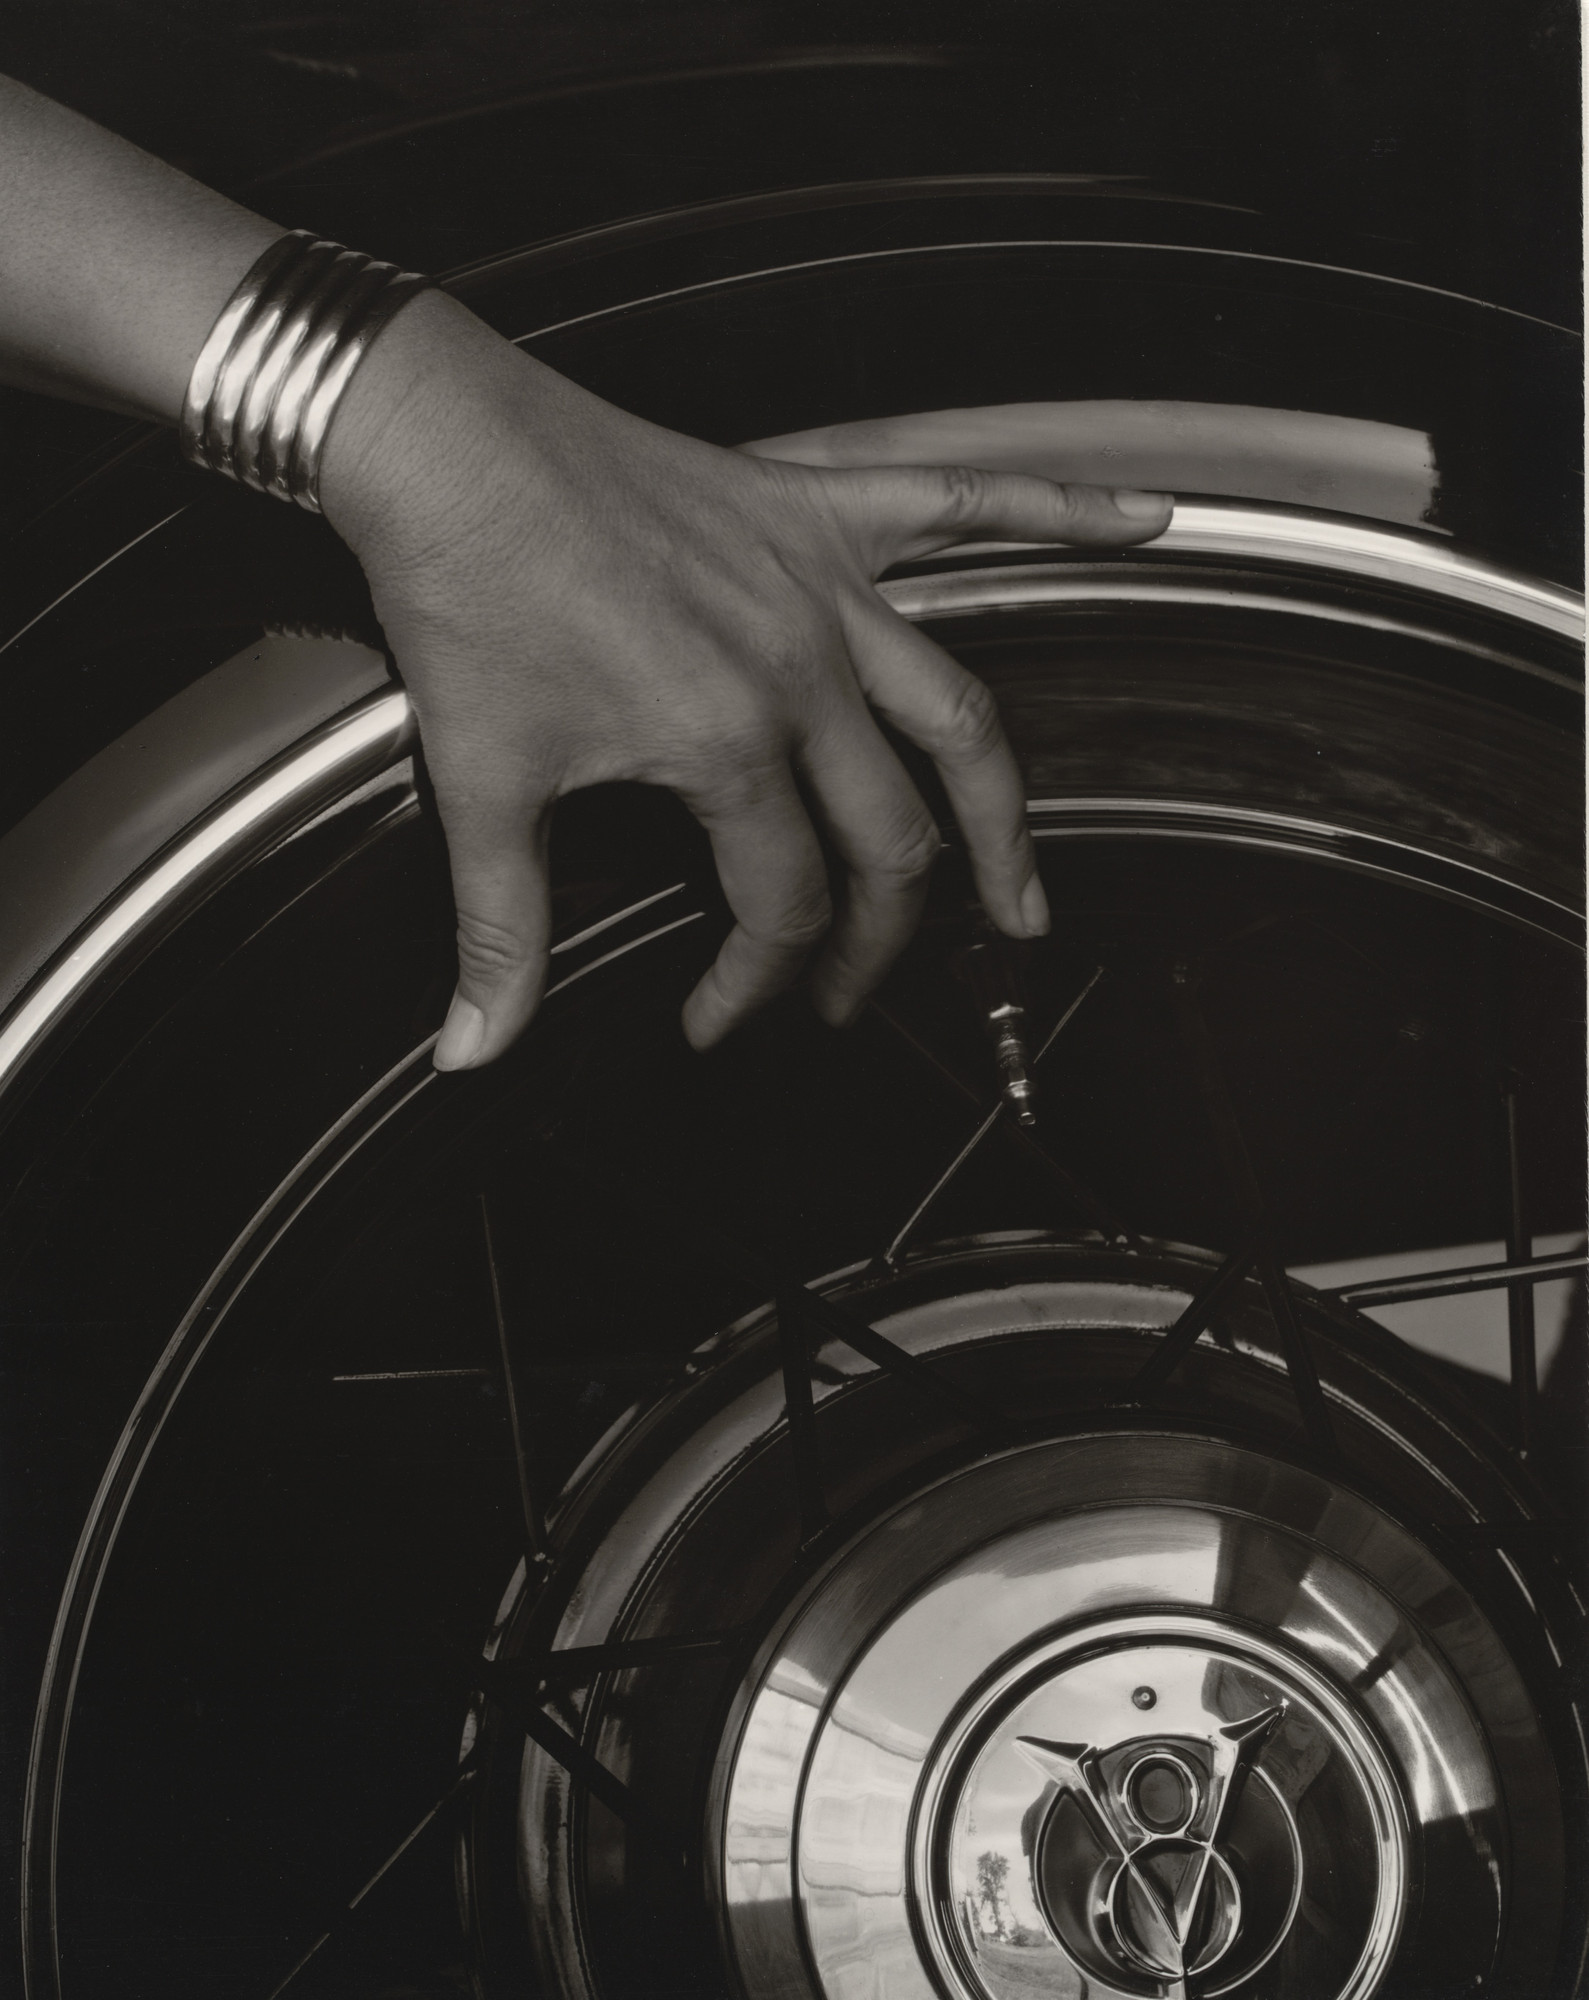 Alfred Stieglitz. Georgia O'Keeffe - Hand and Wheel. 1933